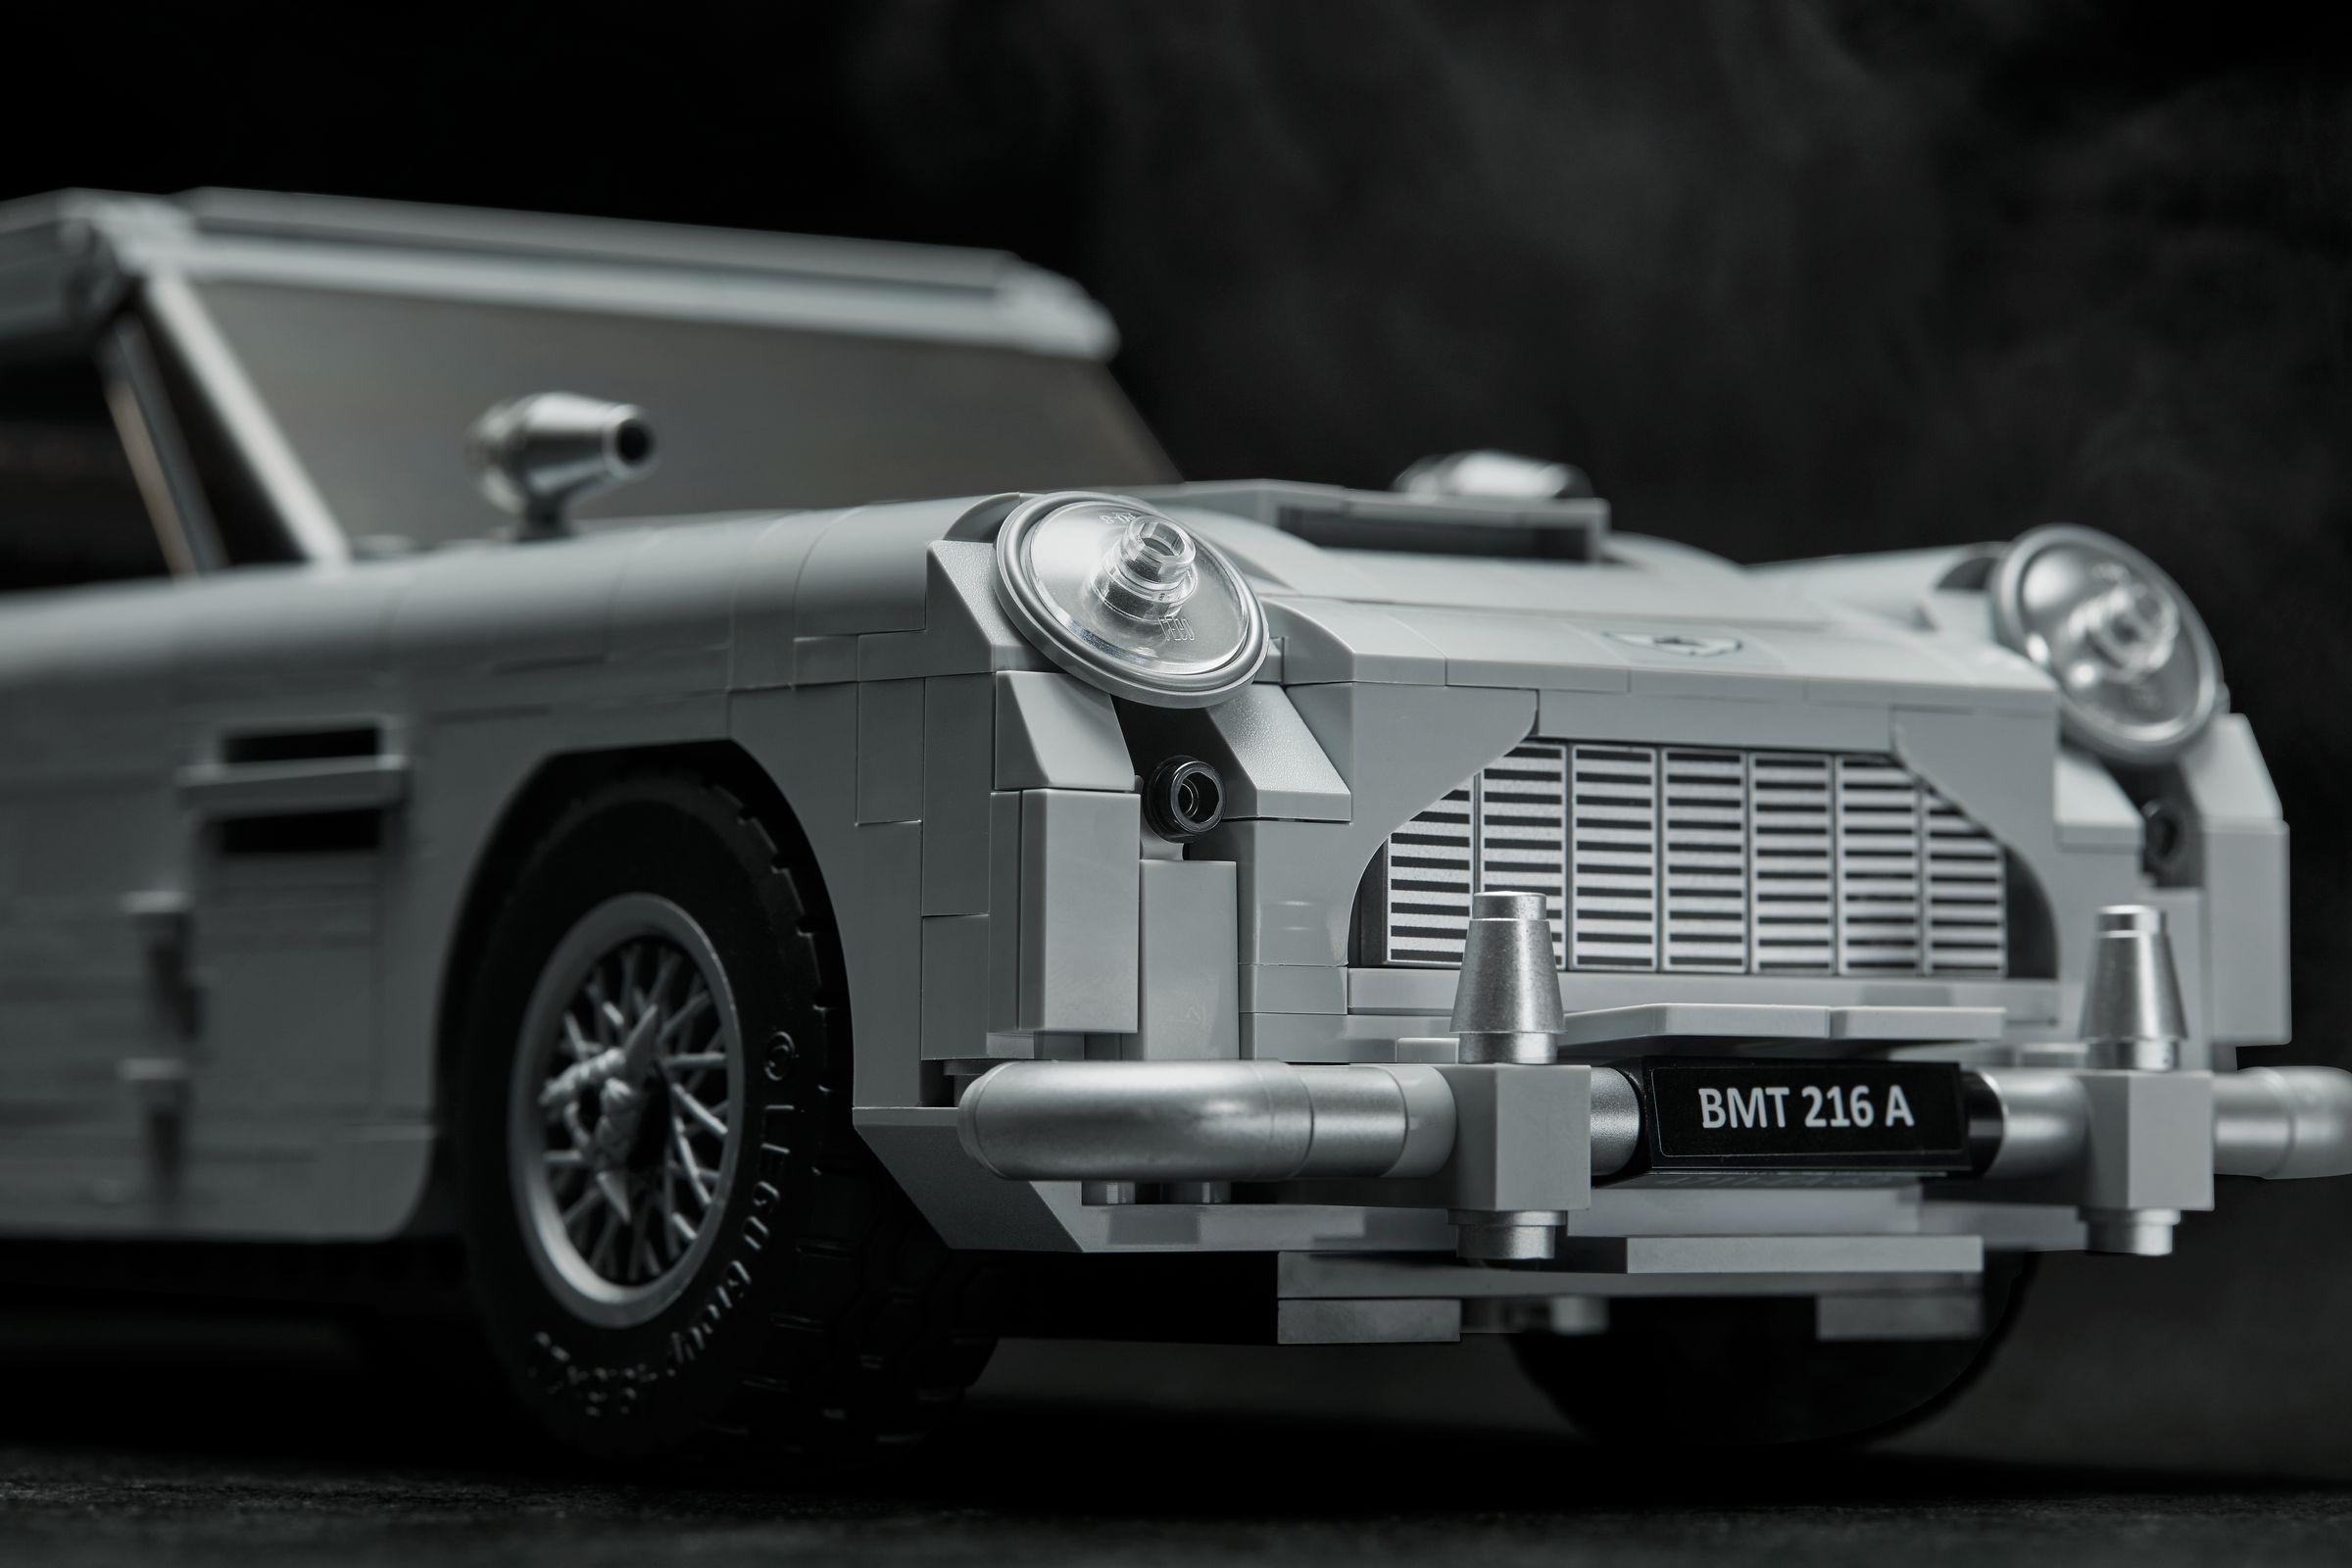 LEGO Advanced Models 10262 James Bond Aston Martin DB5 LEGO_10262_alt8.jpg